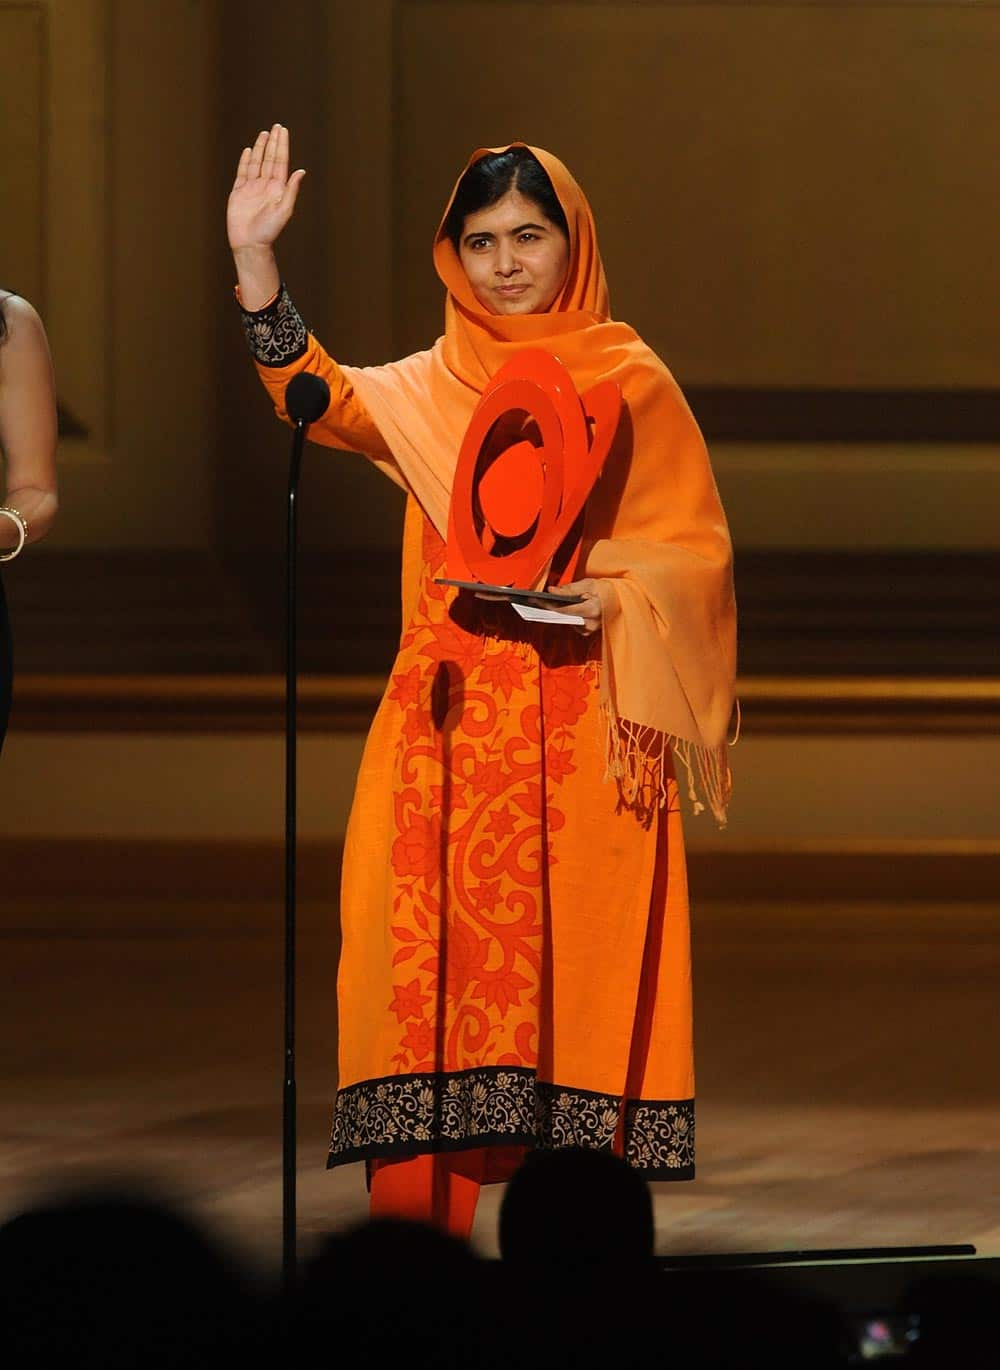 Education activist Malala Yousafzai accepts The Women of the Year Fund Honoree Award on stage at the 2013 Glamour Women of the Year Awards, in New York.